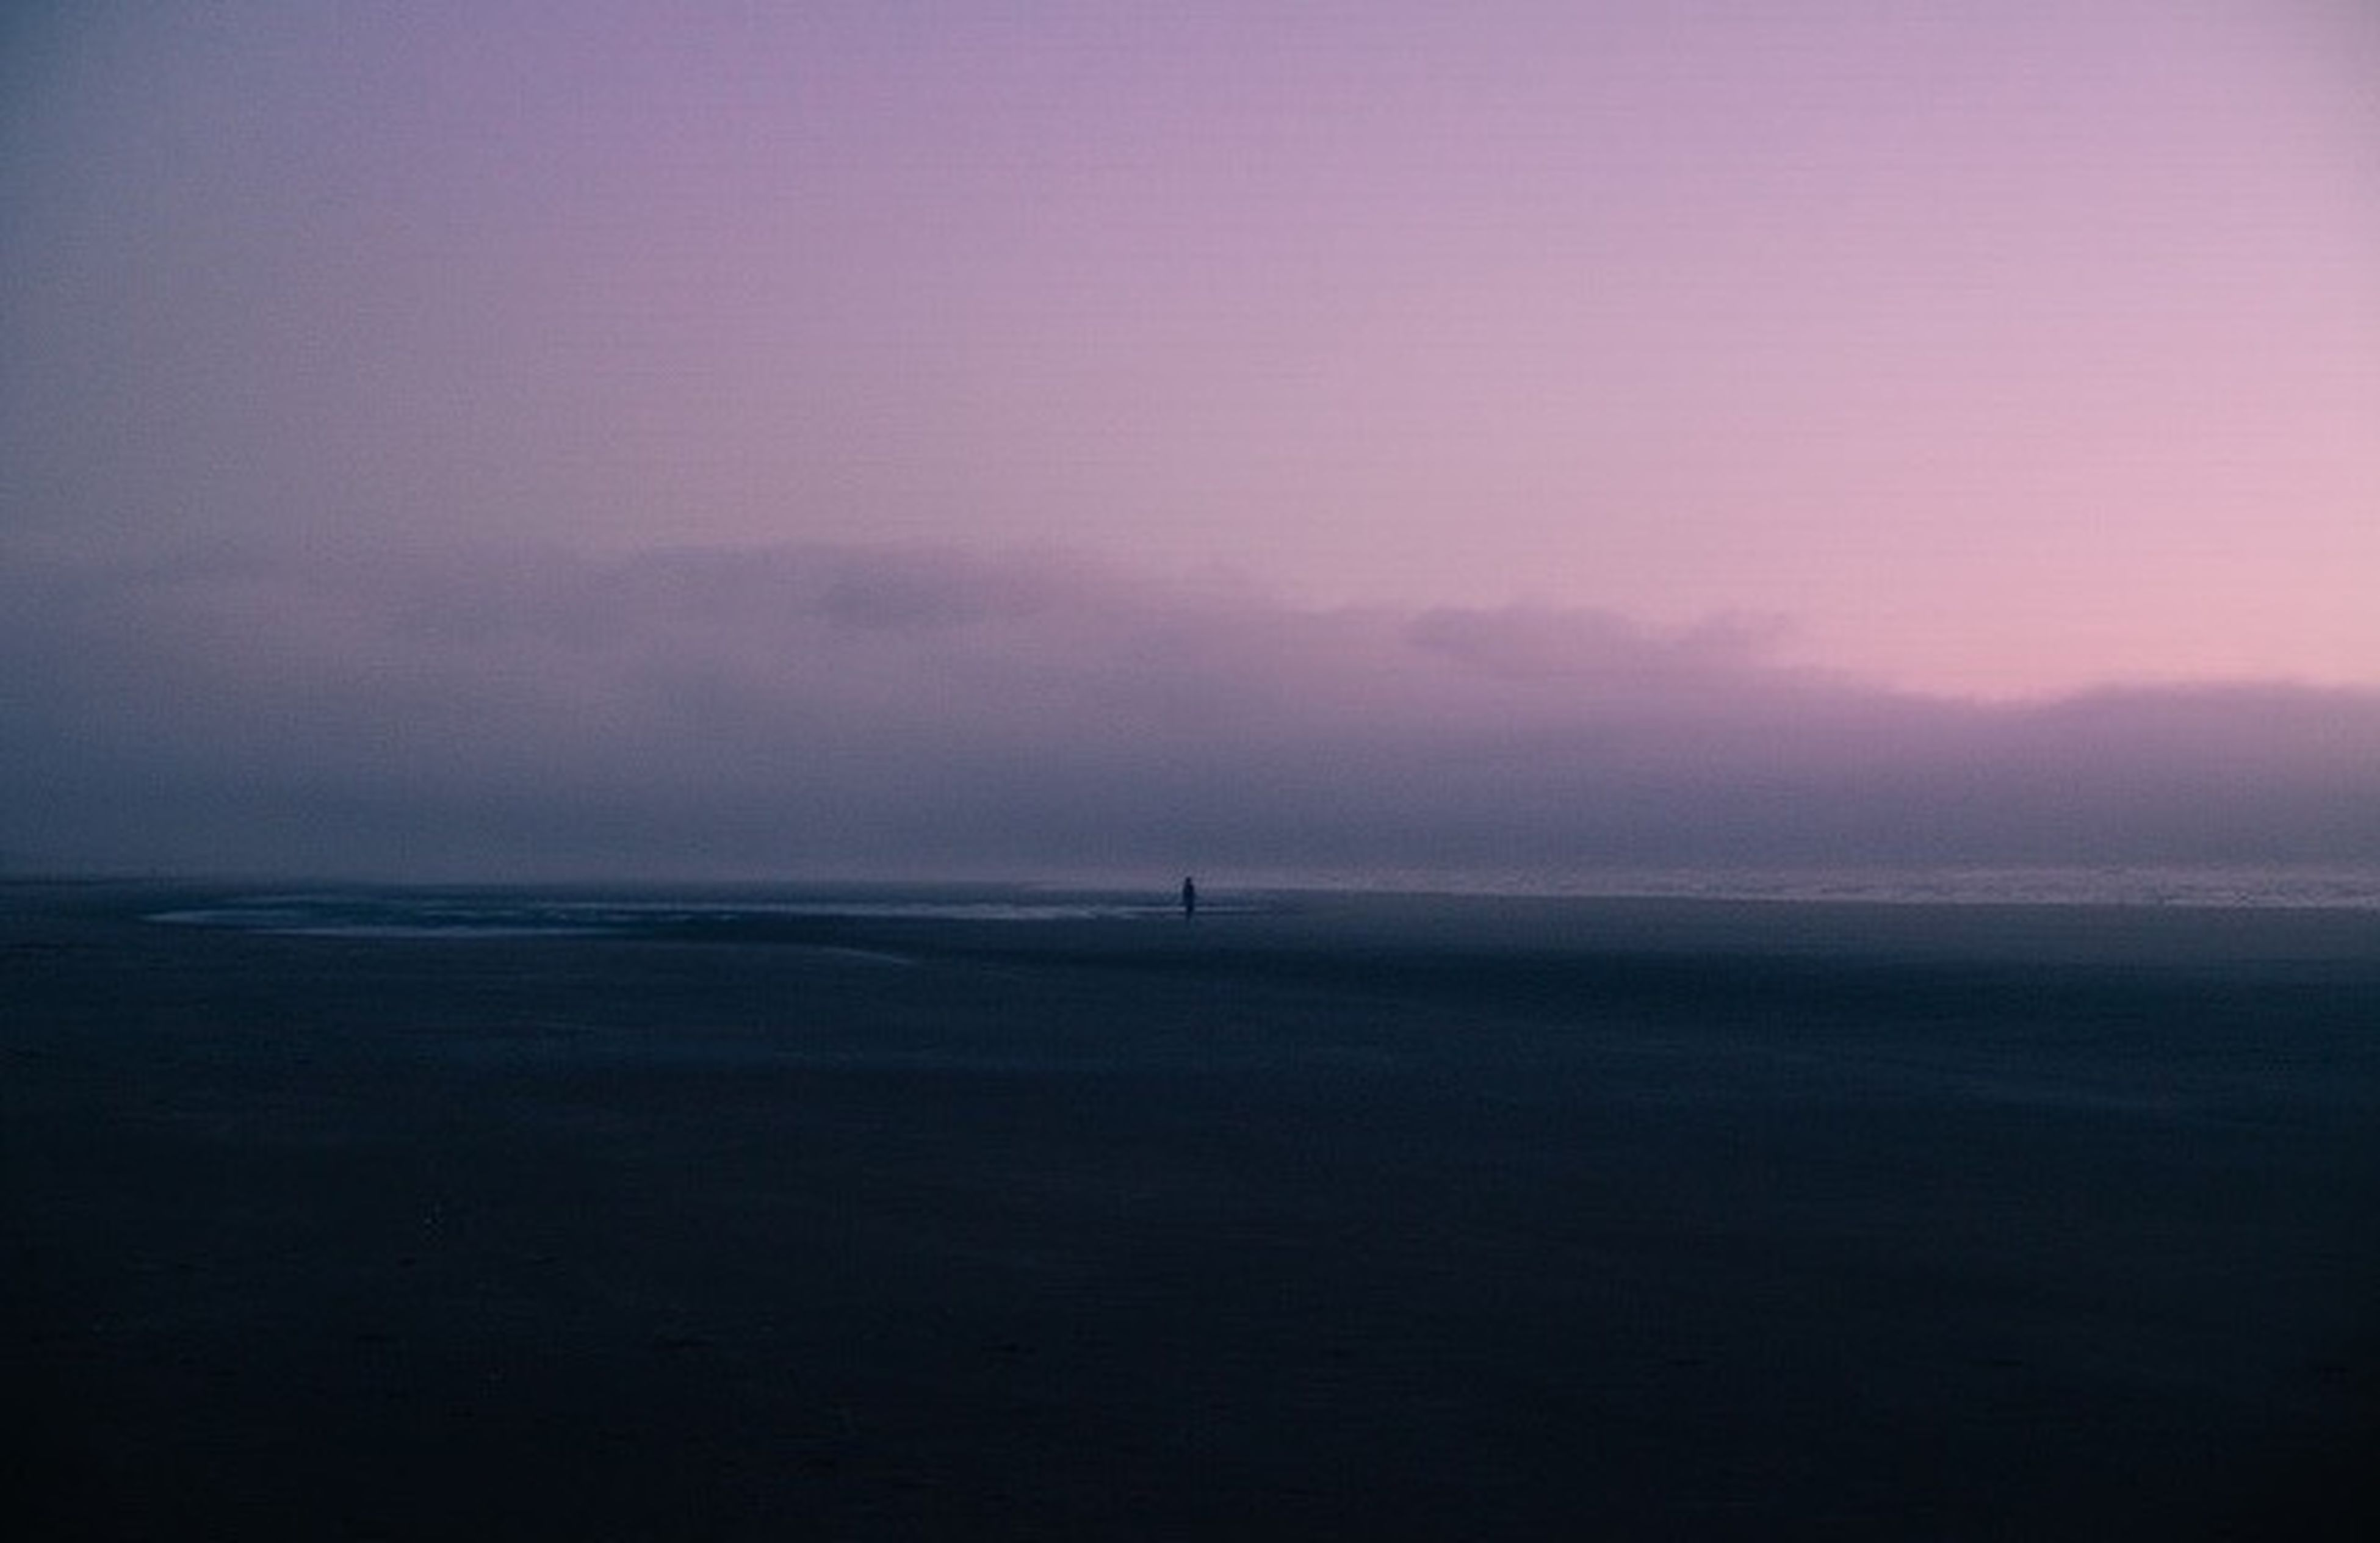 sea, tranquil scene, horizon over water, scenics, tranquility, water, silhouette, beauty in nature, sky, sunset, beach, nature, copy space, idyllic, dusk, shore, calm, remote, outdoors, non-urban scene